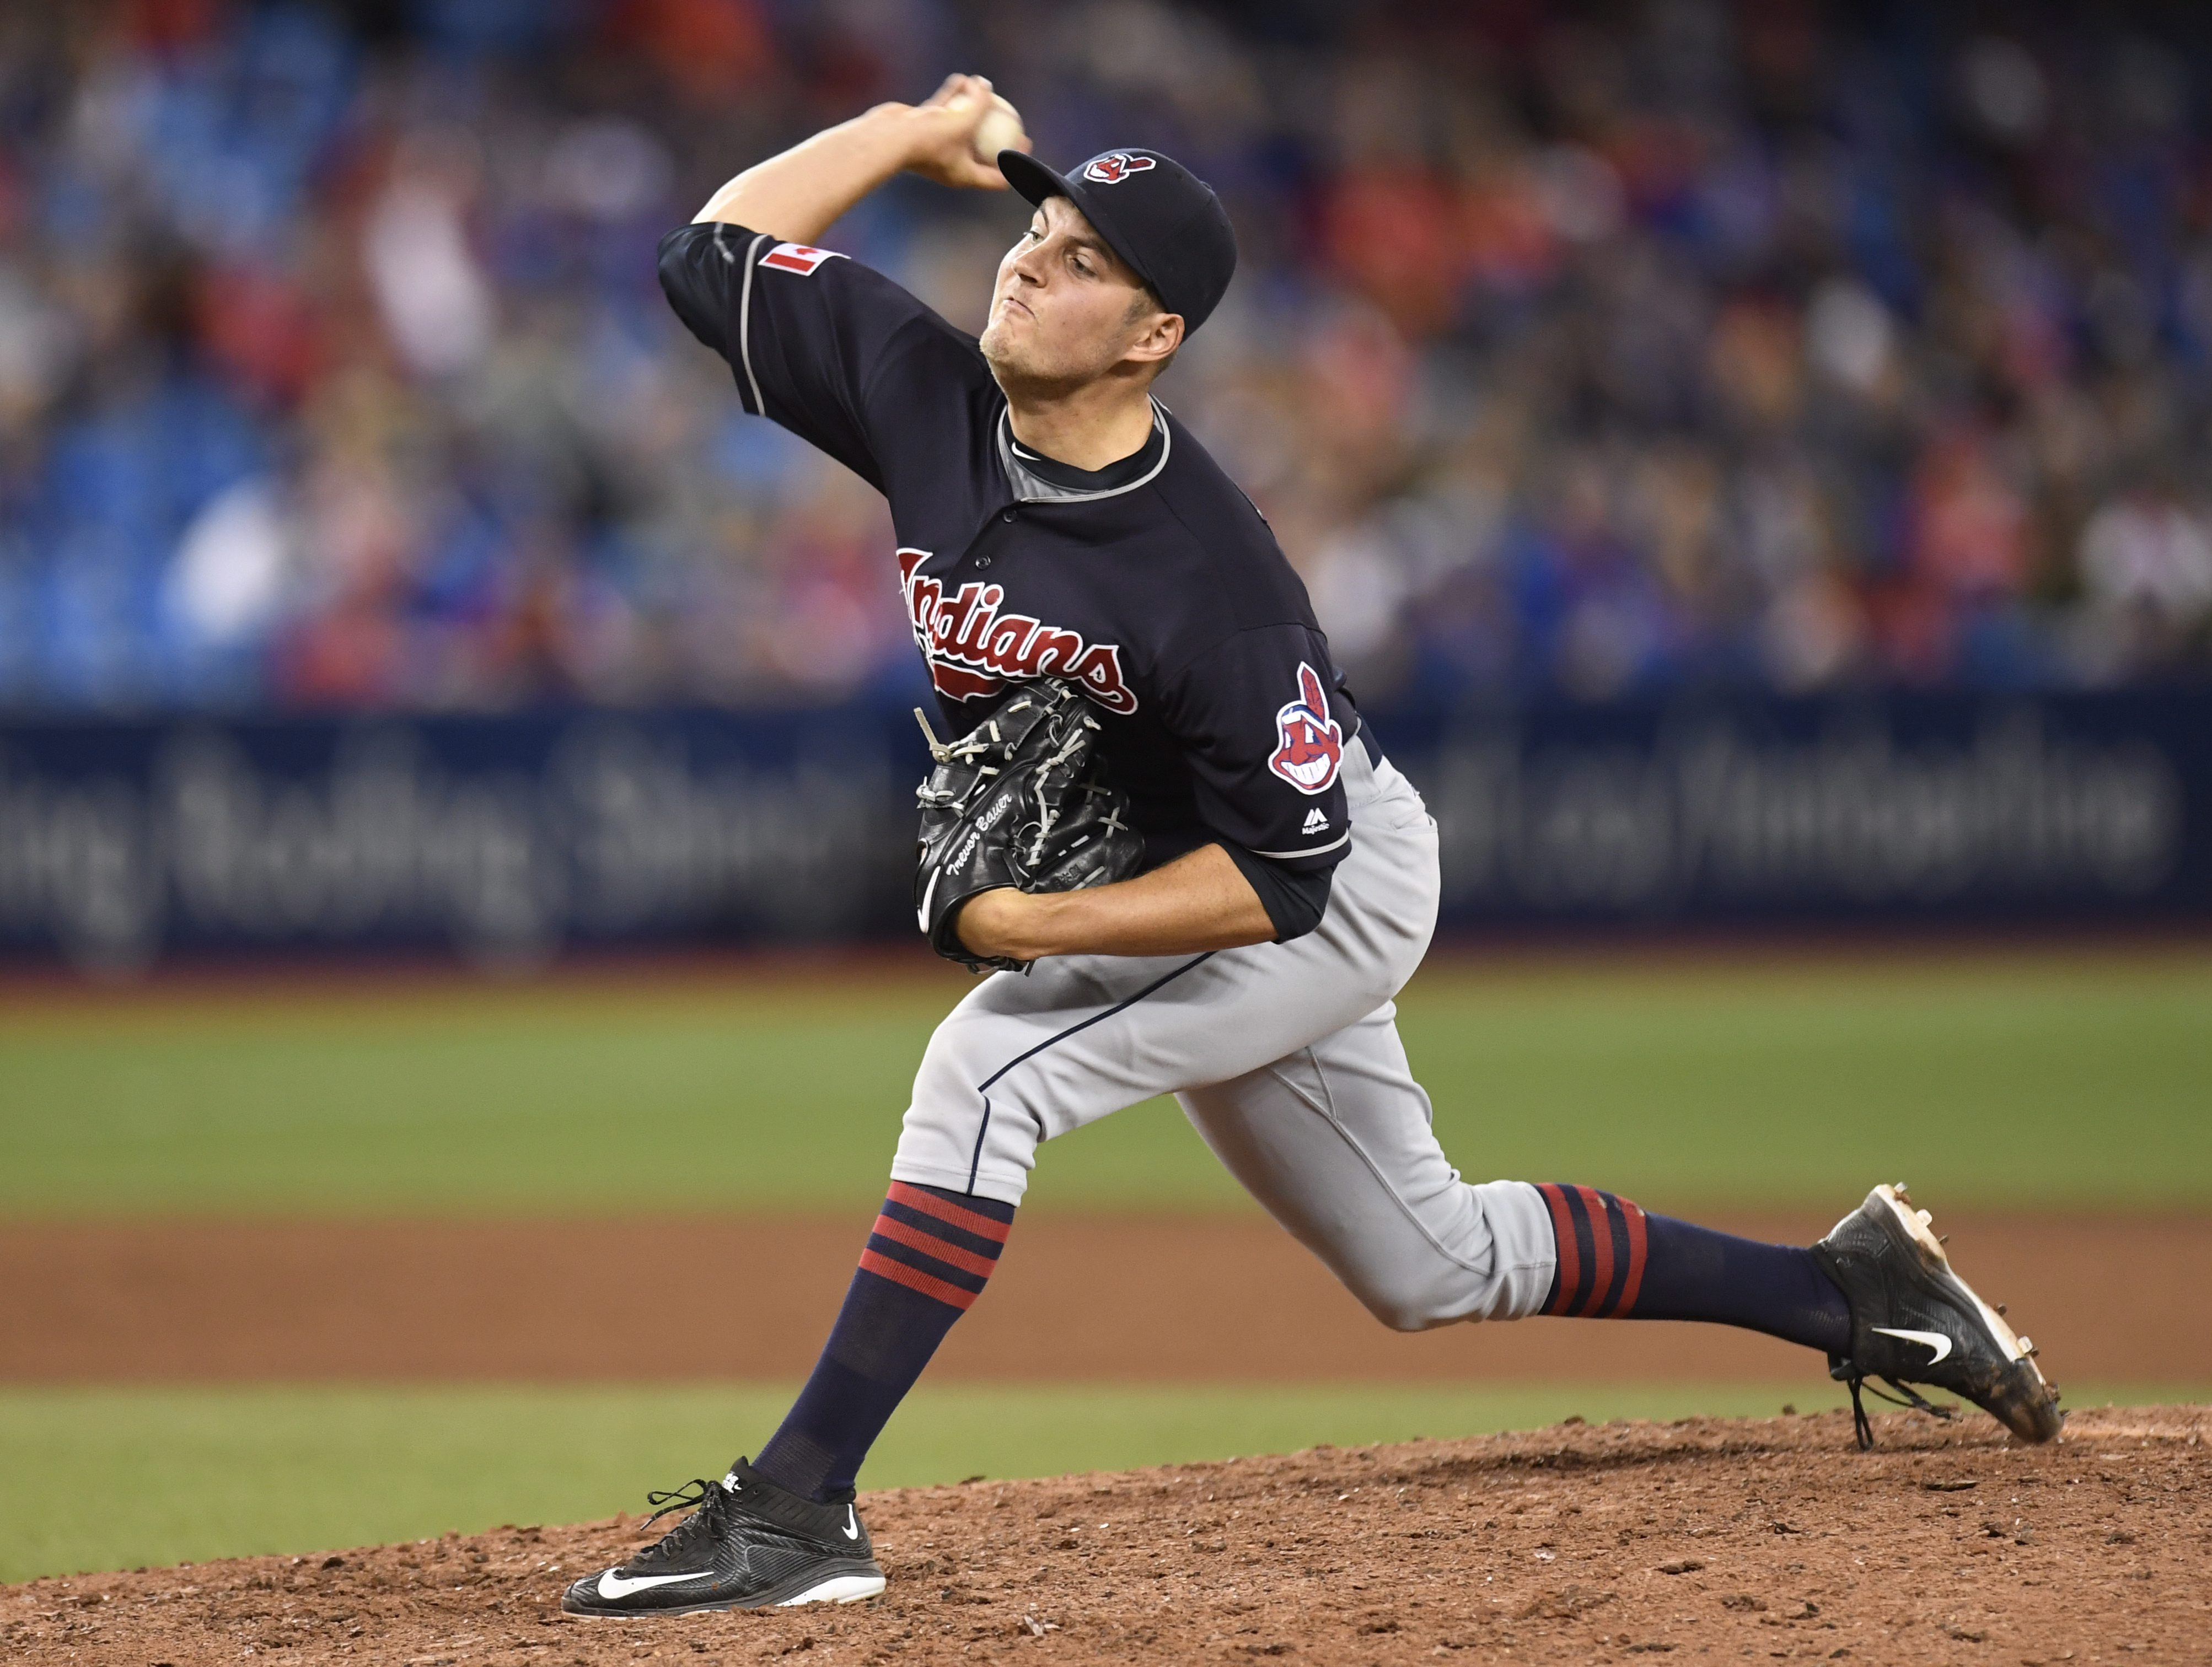 Cleveland Indians pitcher Trevor Bauer pitches against the Toronto Blue Jays during the 15th inning of a baseball game in Toronto, Friday, July 1, 2016. (Frank Gunn/The Canadian Press via AP)